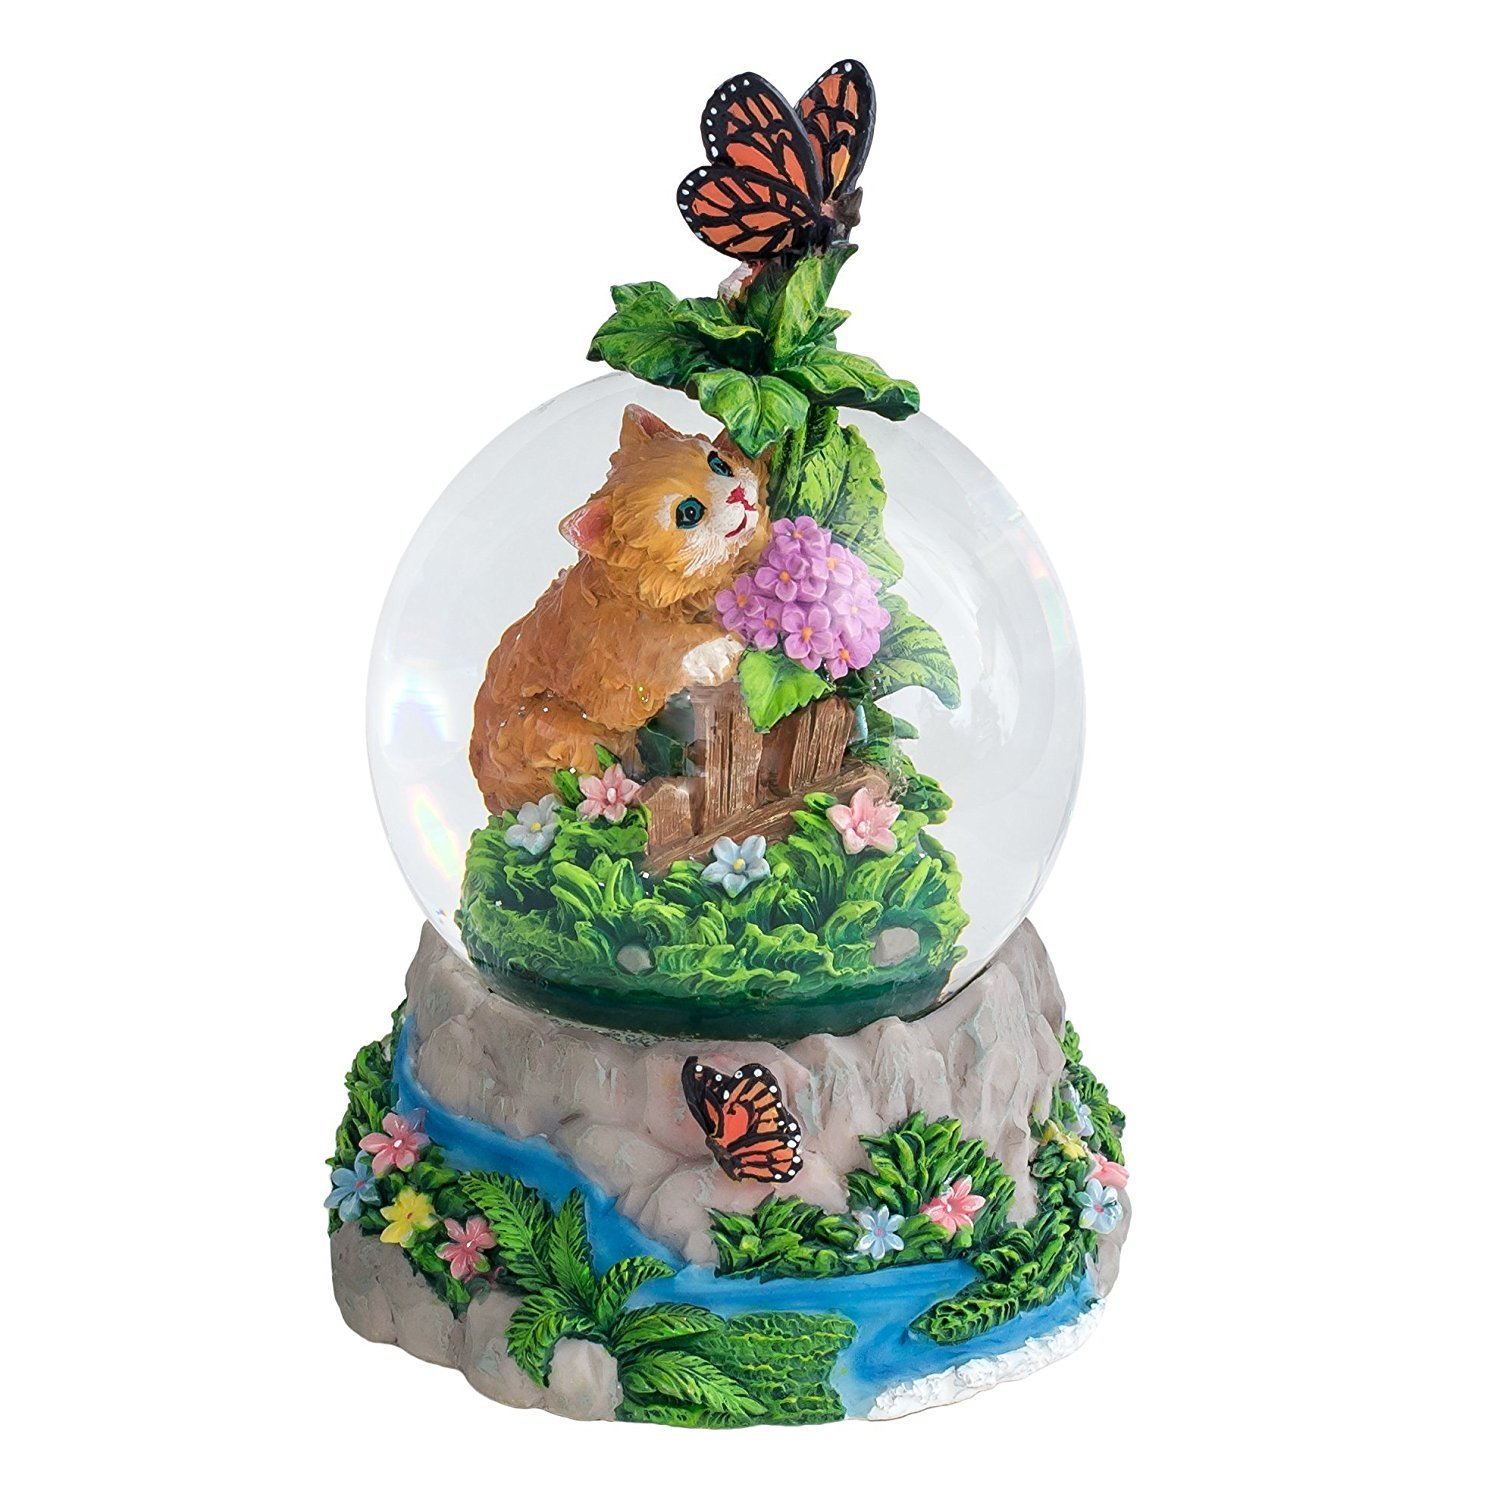 Kittens and Butterfly 100MM Resin Stone 3D Musical Water Globe Plays Tune Memory Cadona International Inc